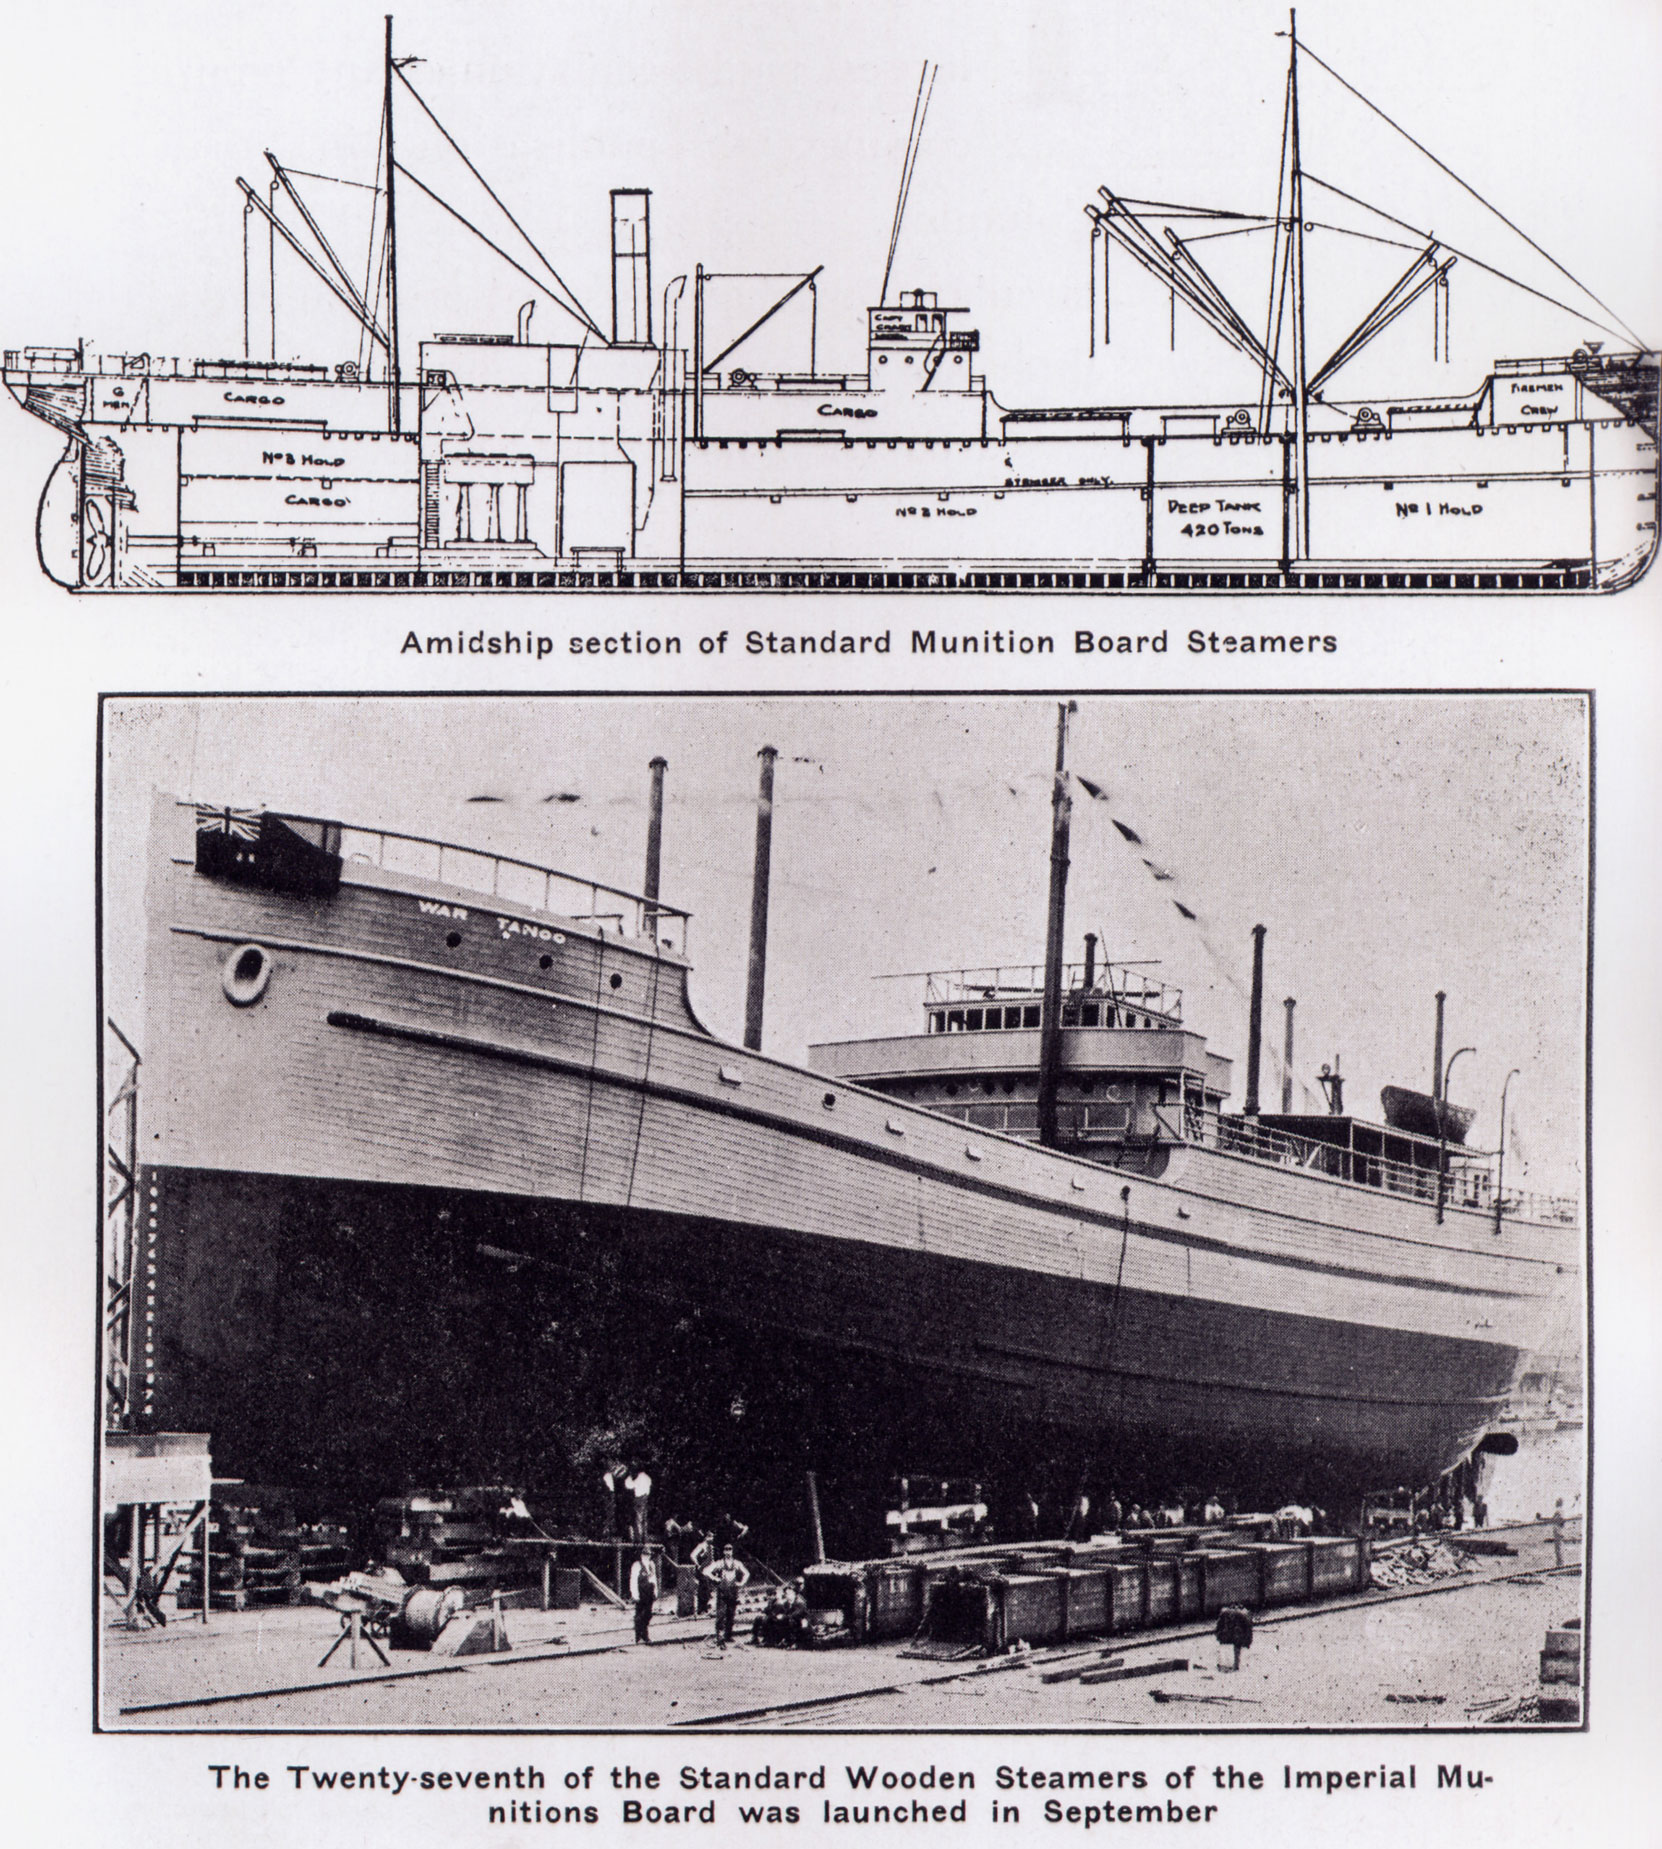 Diagram and photo of the War Tango, the 27th of the Standard Wooden Steamers built in British Columbia shipyards for the Imperial Munitions Board between 1917 and 1919. Robert Butchart, as Director of Wooden Shipbuilding, was in charge of this shipbuilding program. (BC Archives photo)